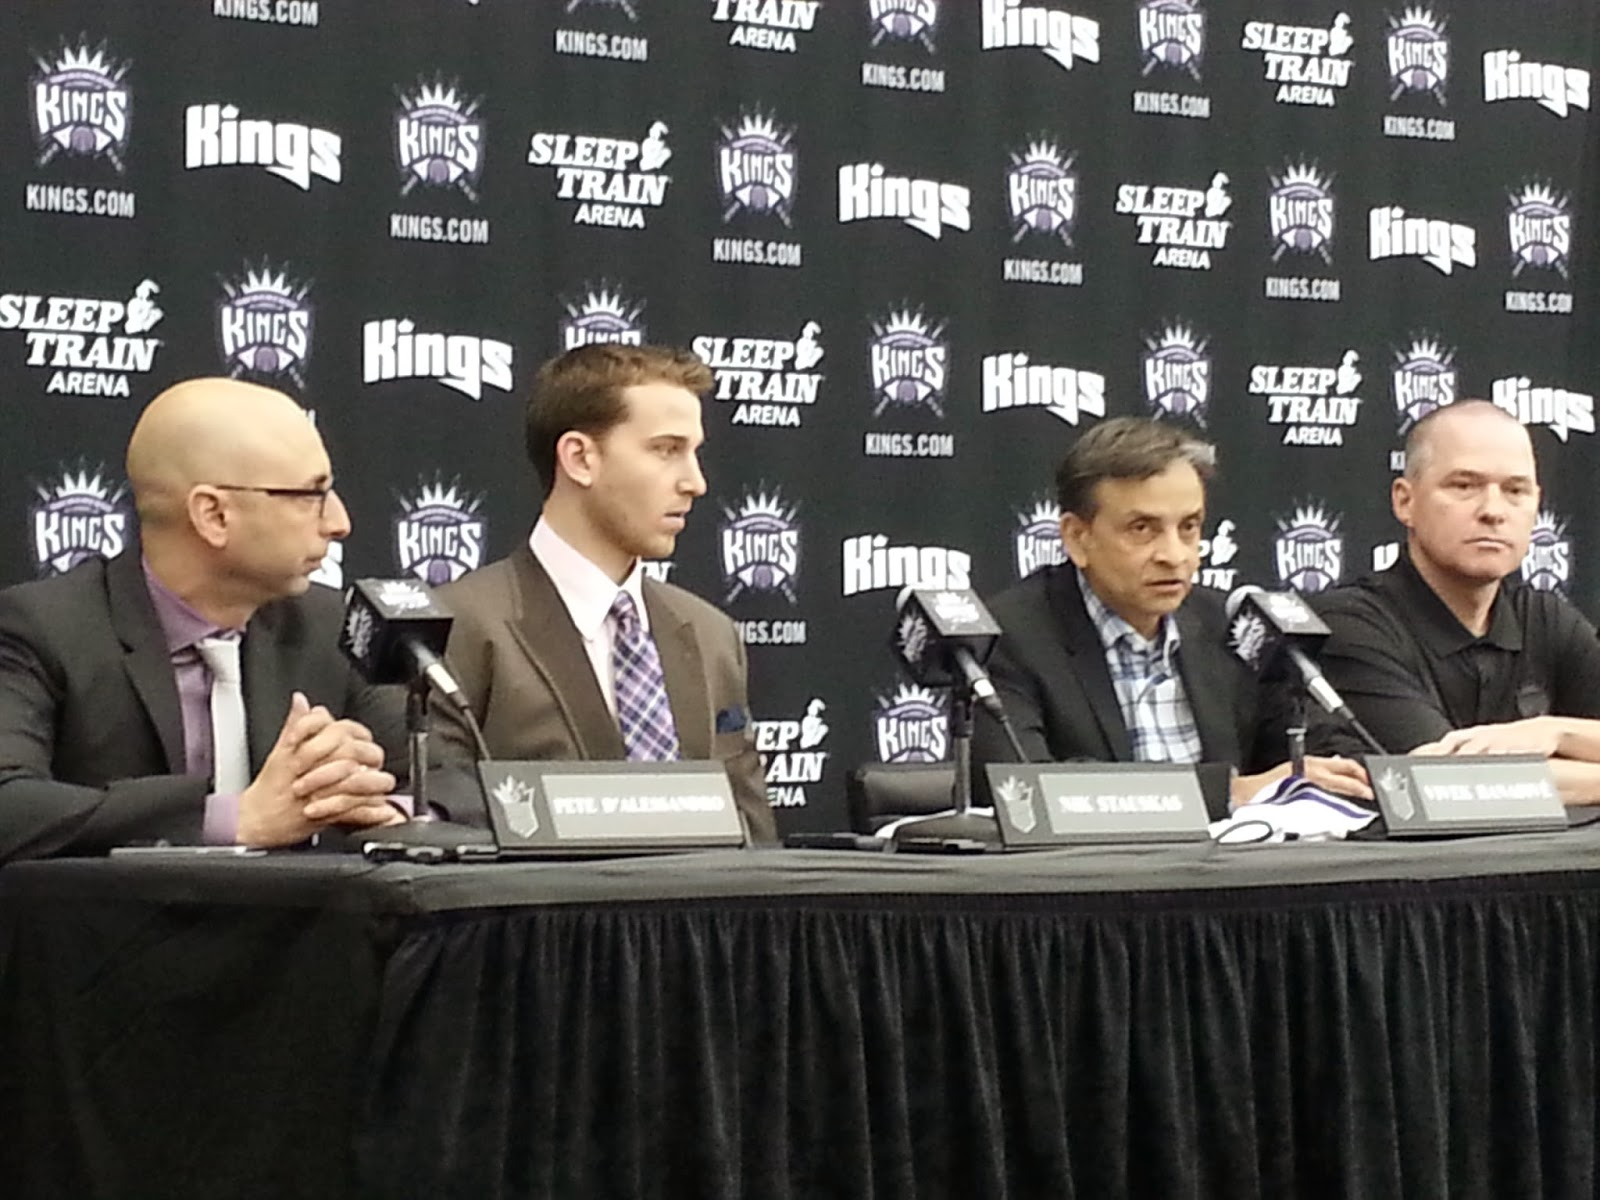 Did the Kings improve this offseason? It's complicated